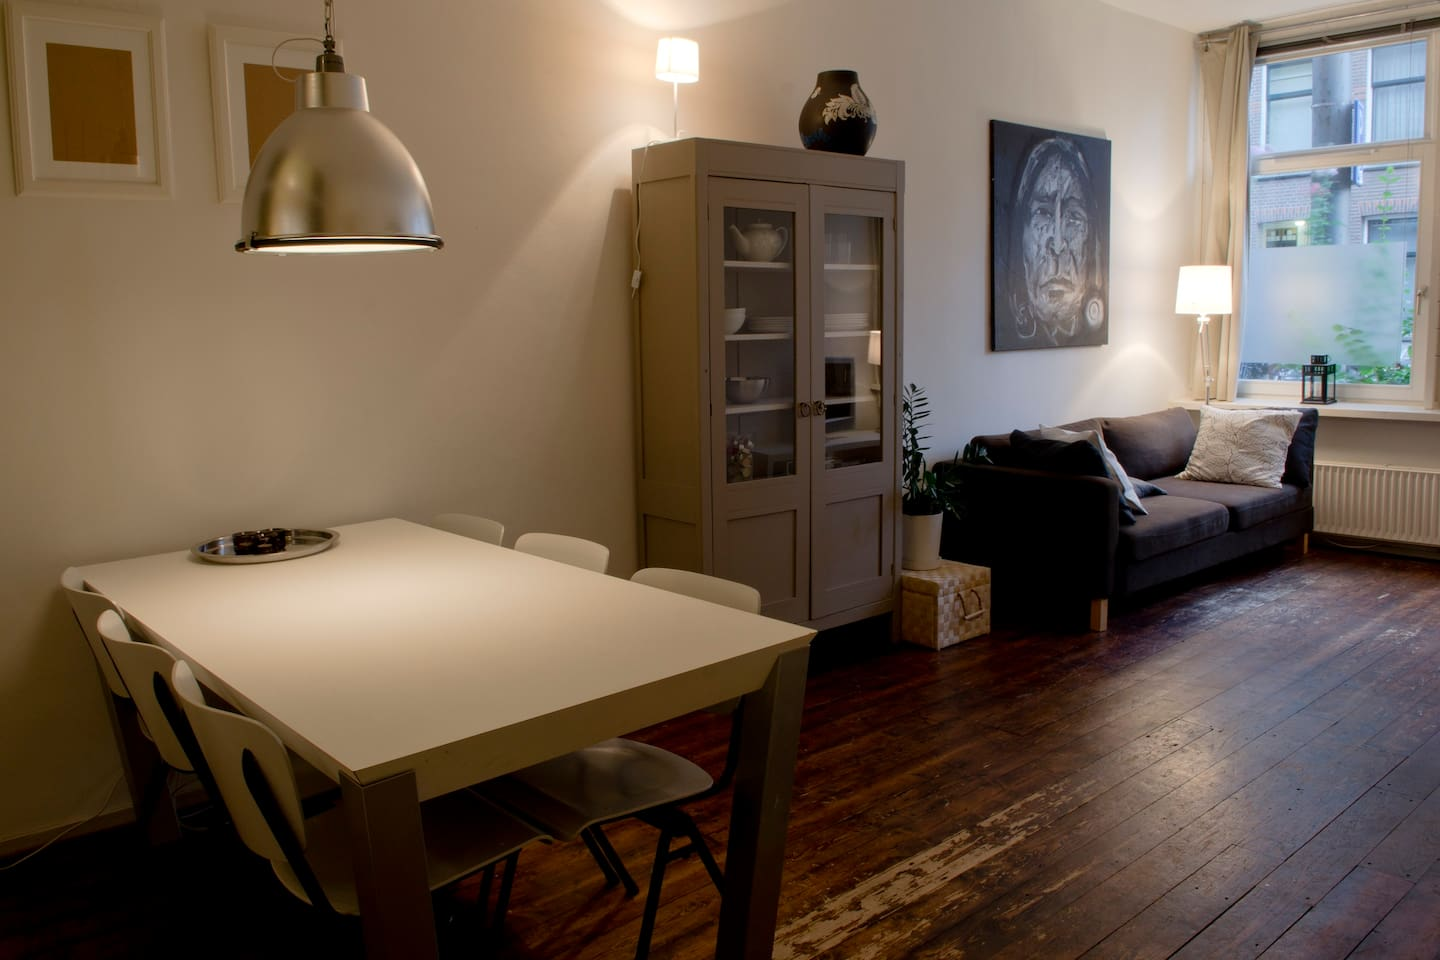 The livingroom  of the Westerpark-apartment; the couch is a sofa couch and can be transformed to a bed for 2 persons